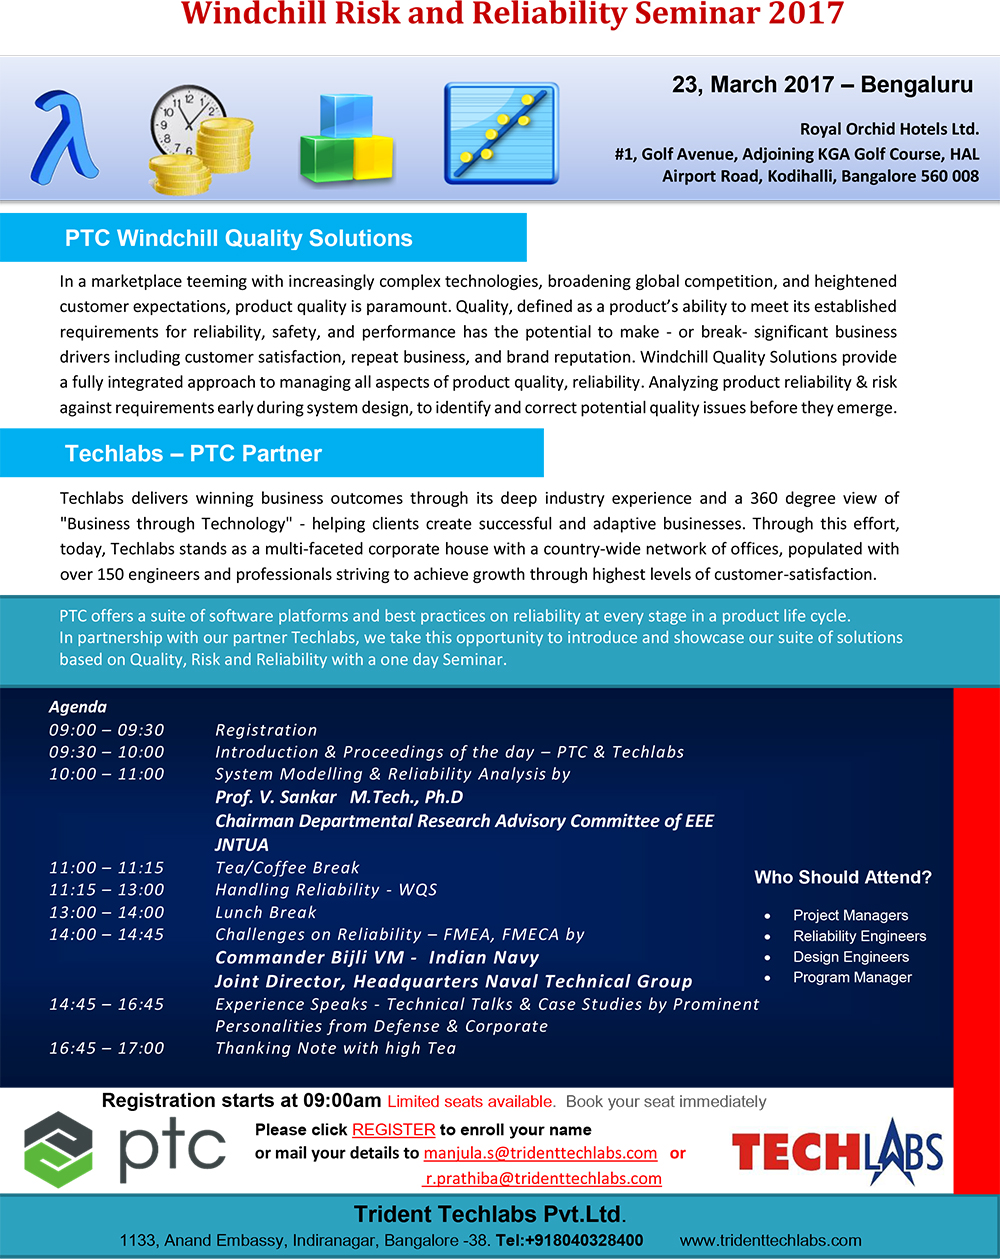 Events Techlabs Electronic Circuit Design And Simulation Software Details Anna Invitation Windchill Risk Reliability Seminar 2017